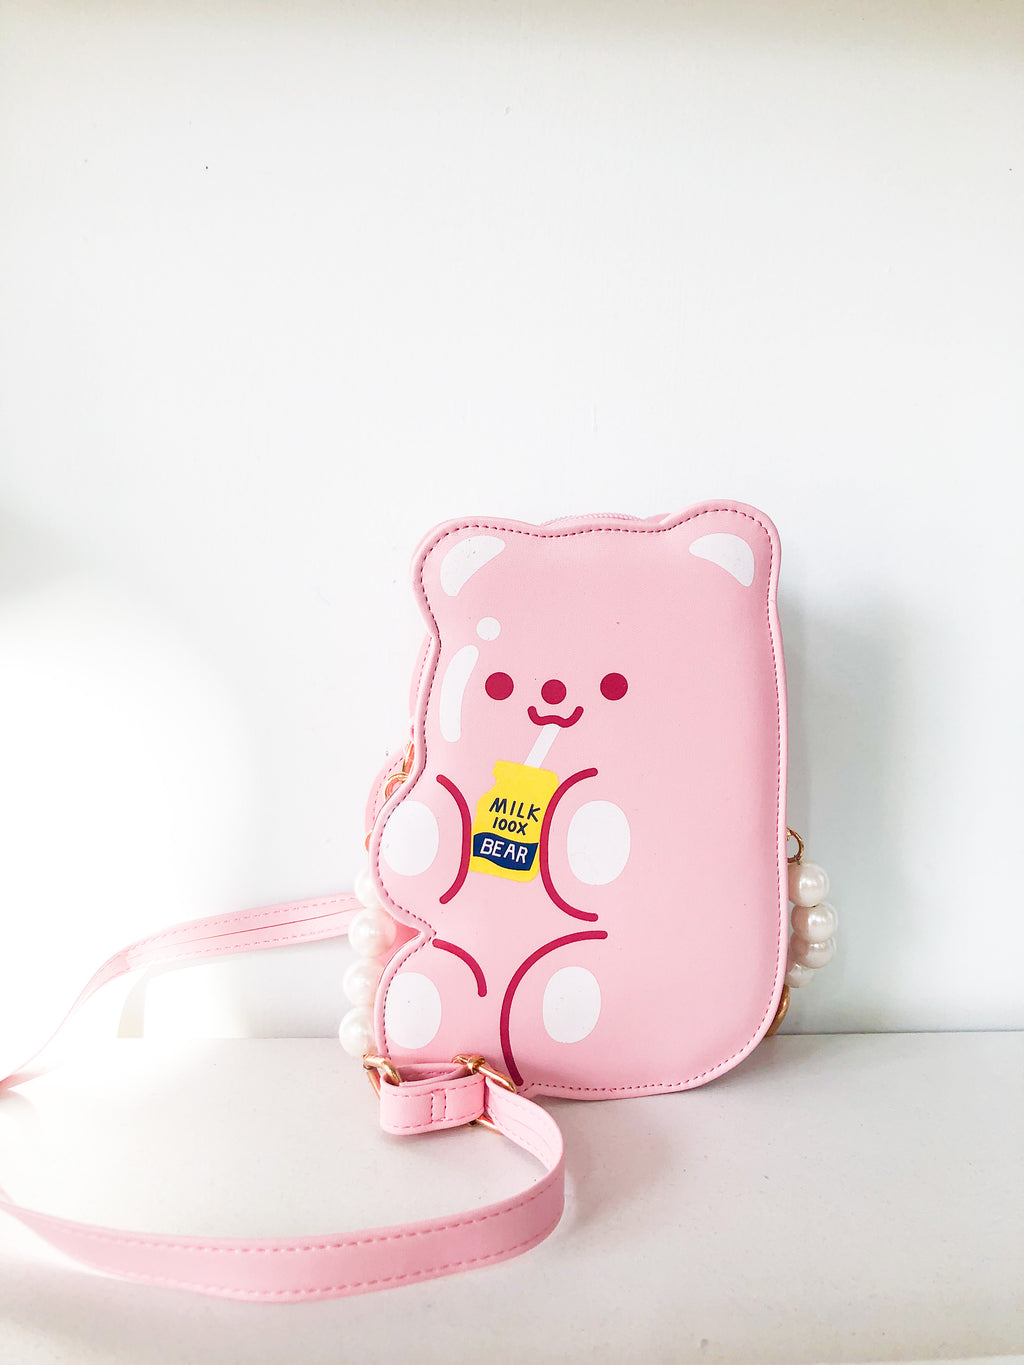 Cute Bear Crossbody Bag